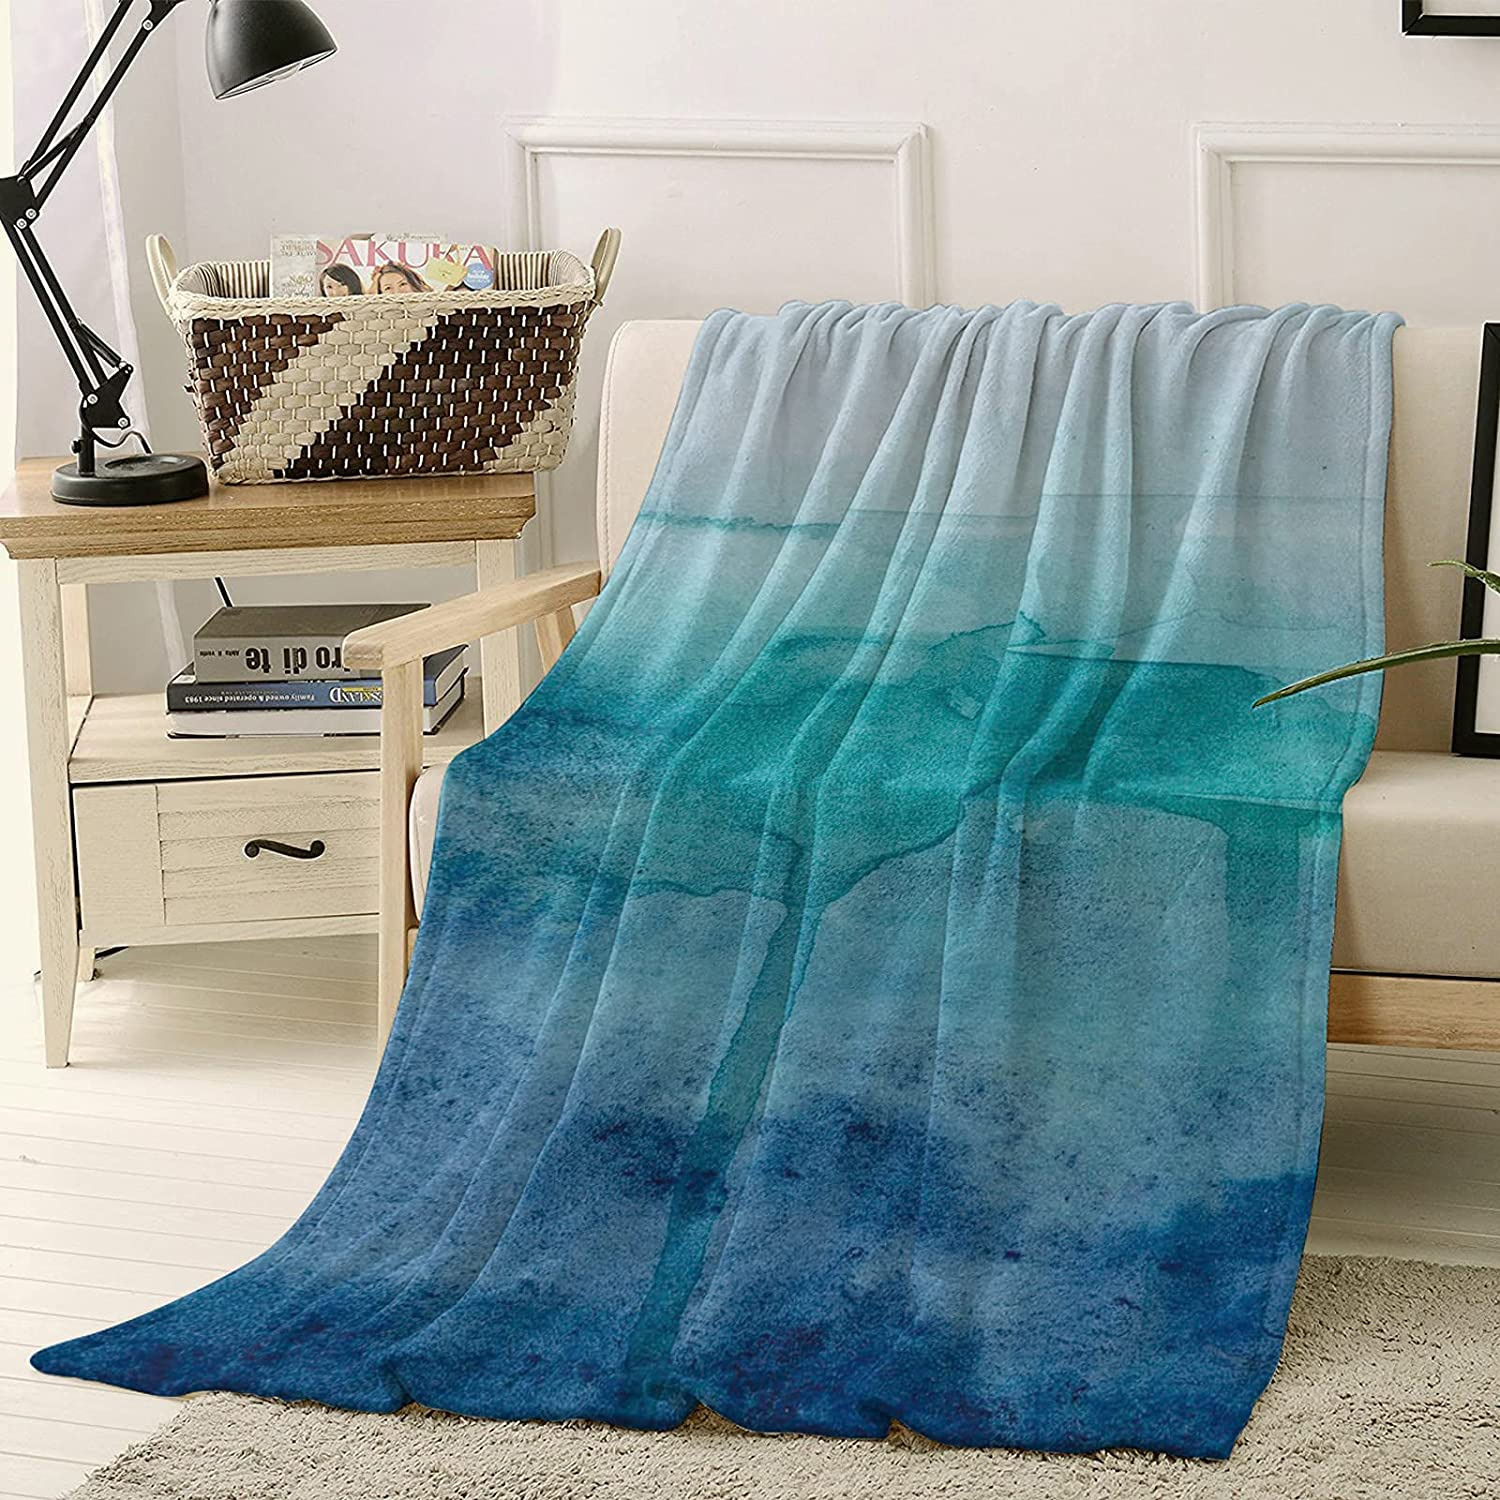 Watercolor Throw Blankets At the Selling rankings price of surprise for Couch Super Bed Blan and Soft